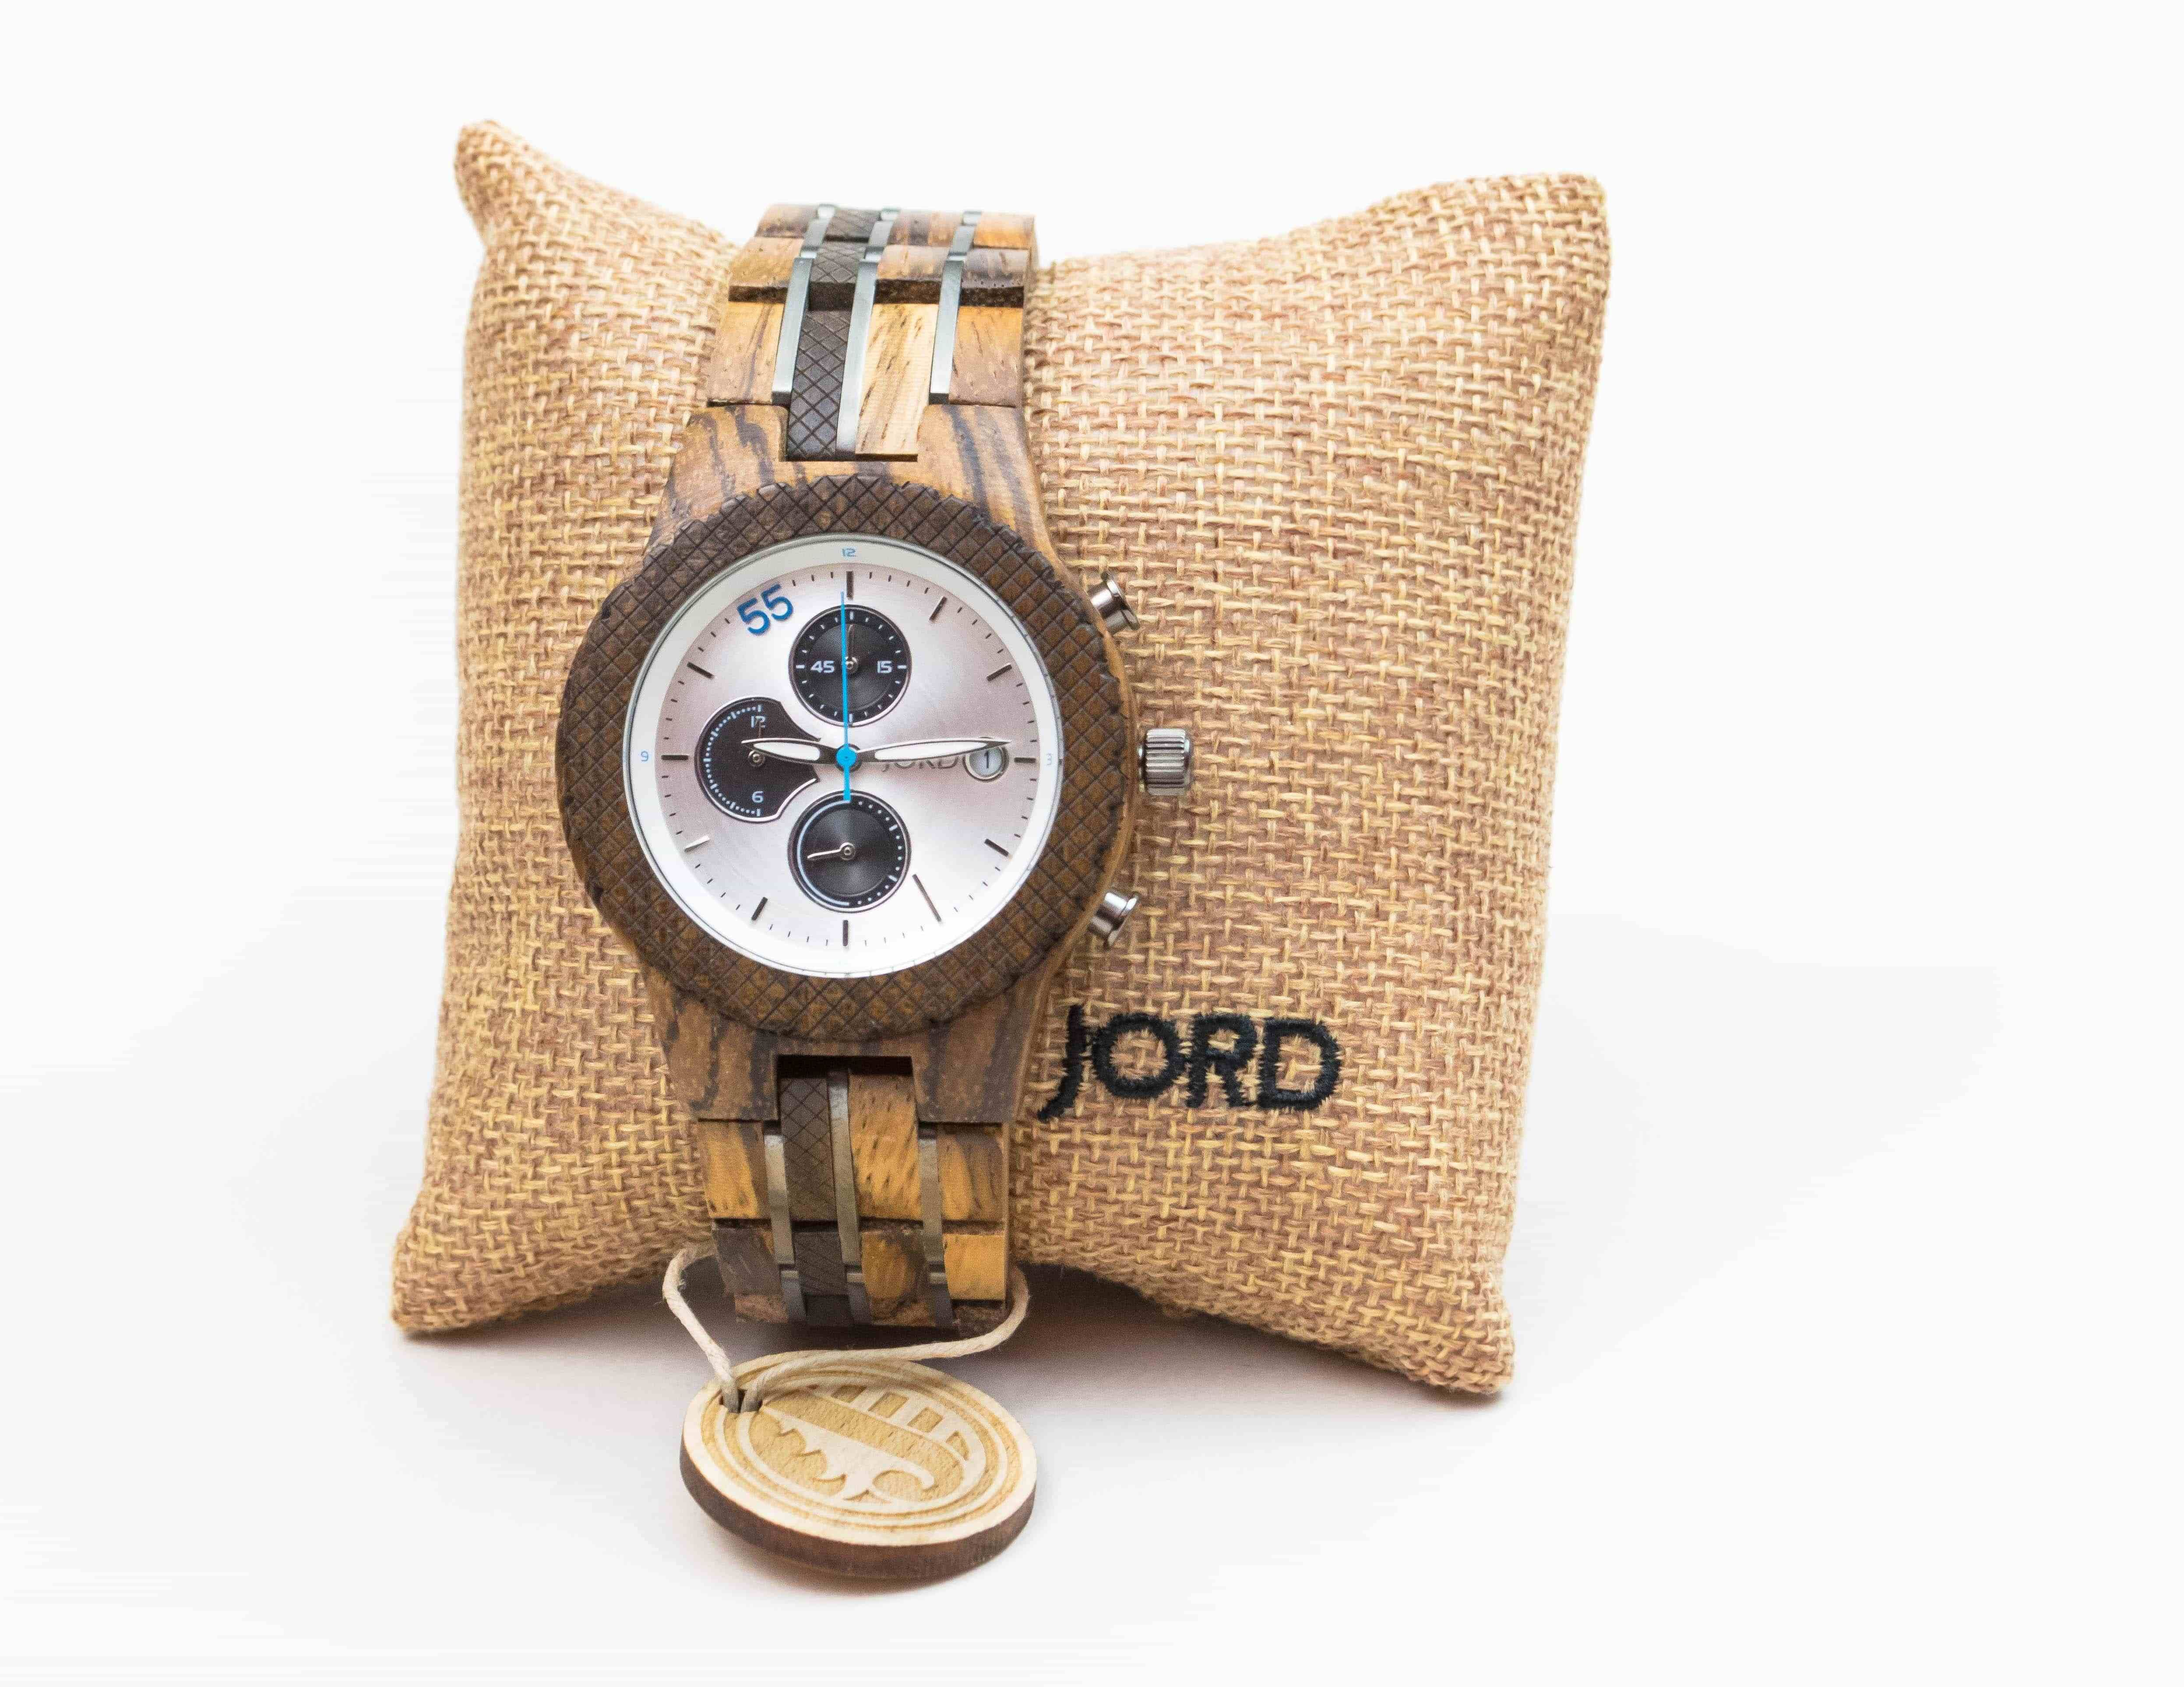 Don't Waste Time! Travel Time Management Tactics. My Normal Gay Life Blog.  JORD Men's Watches, Unique Watches, unique watch